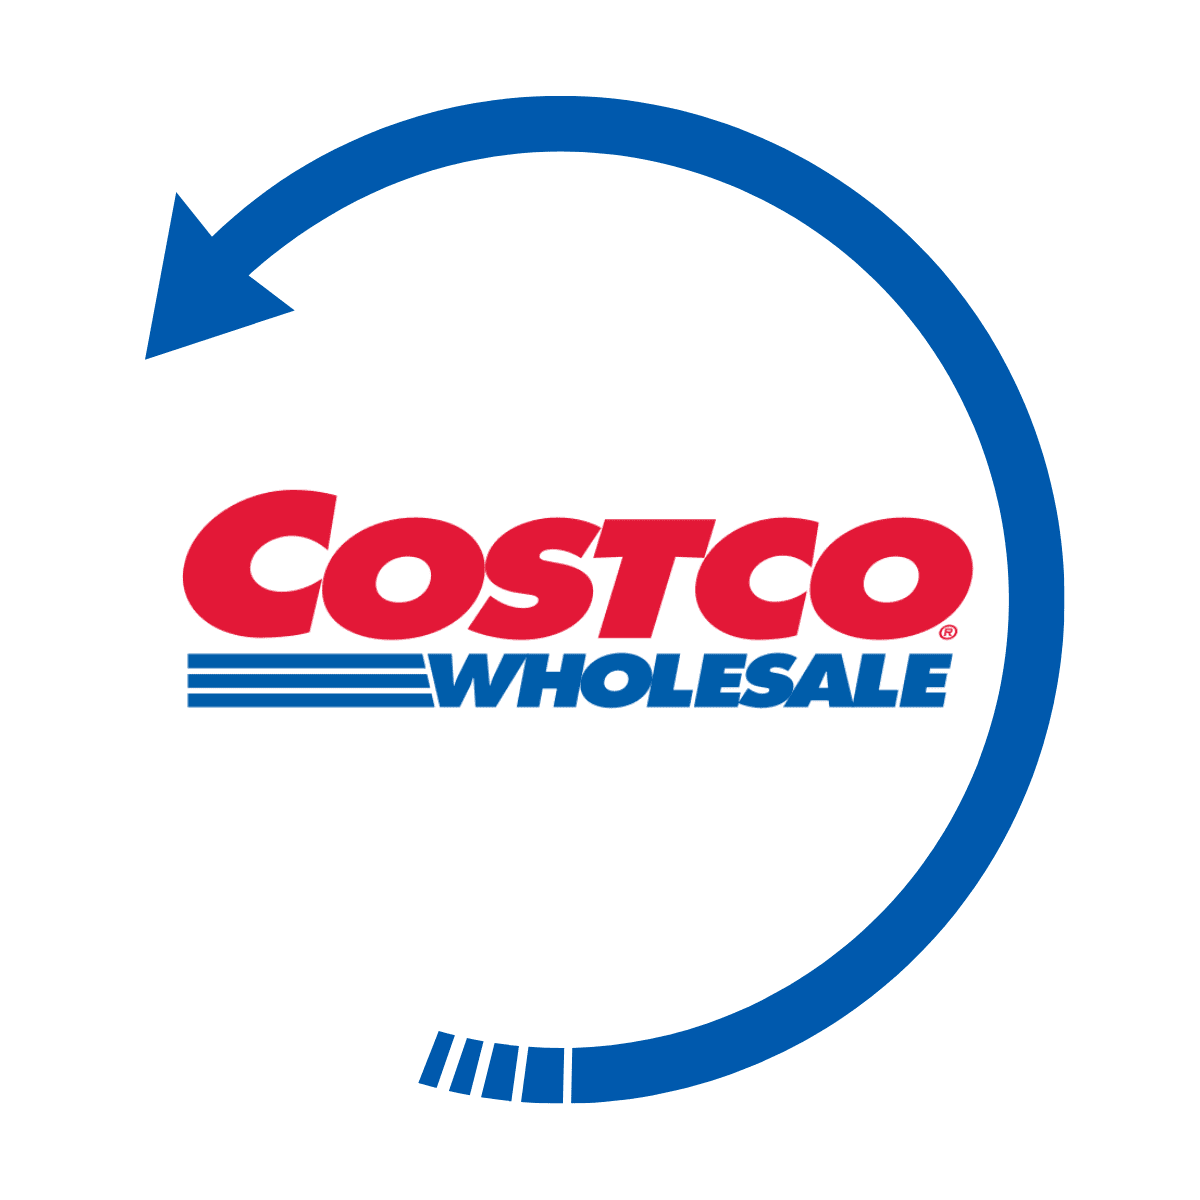 What Is Costco Canada's Return Policy?